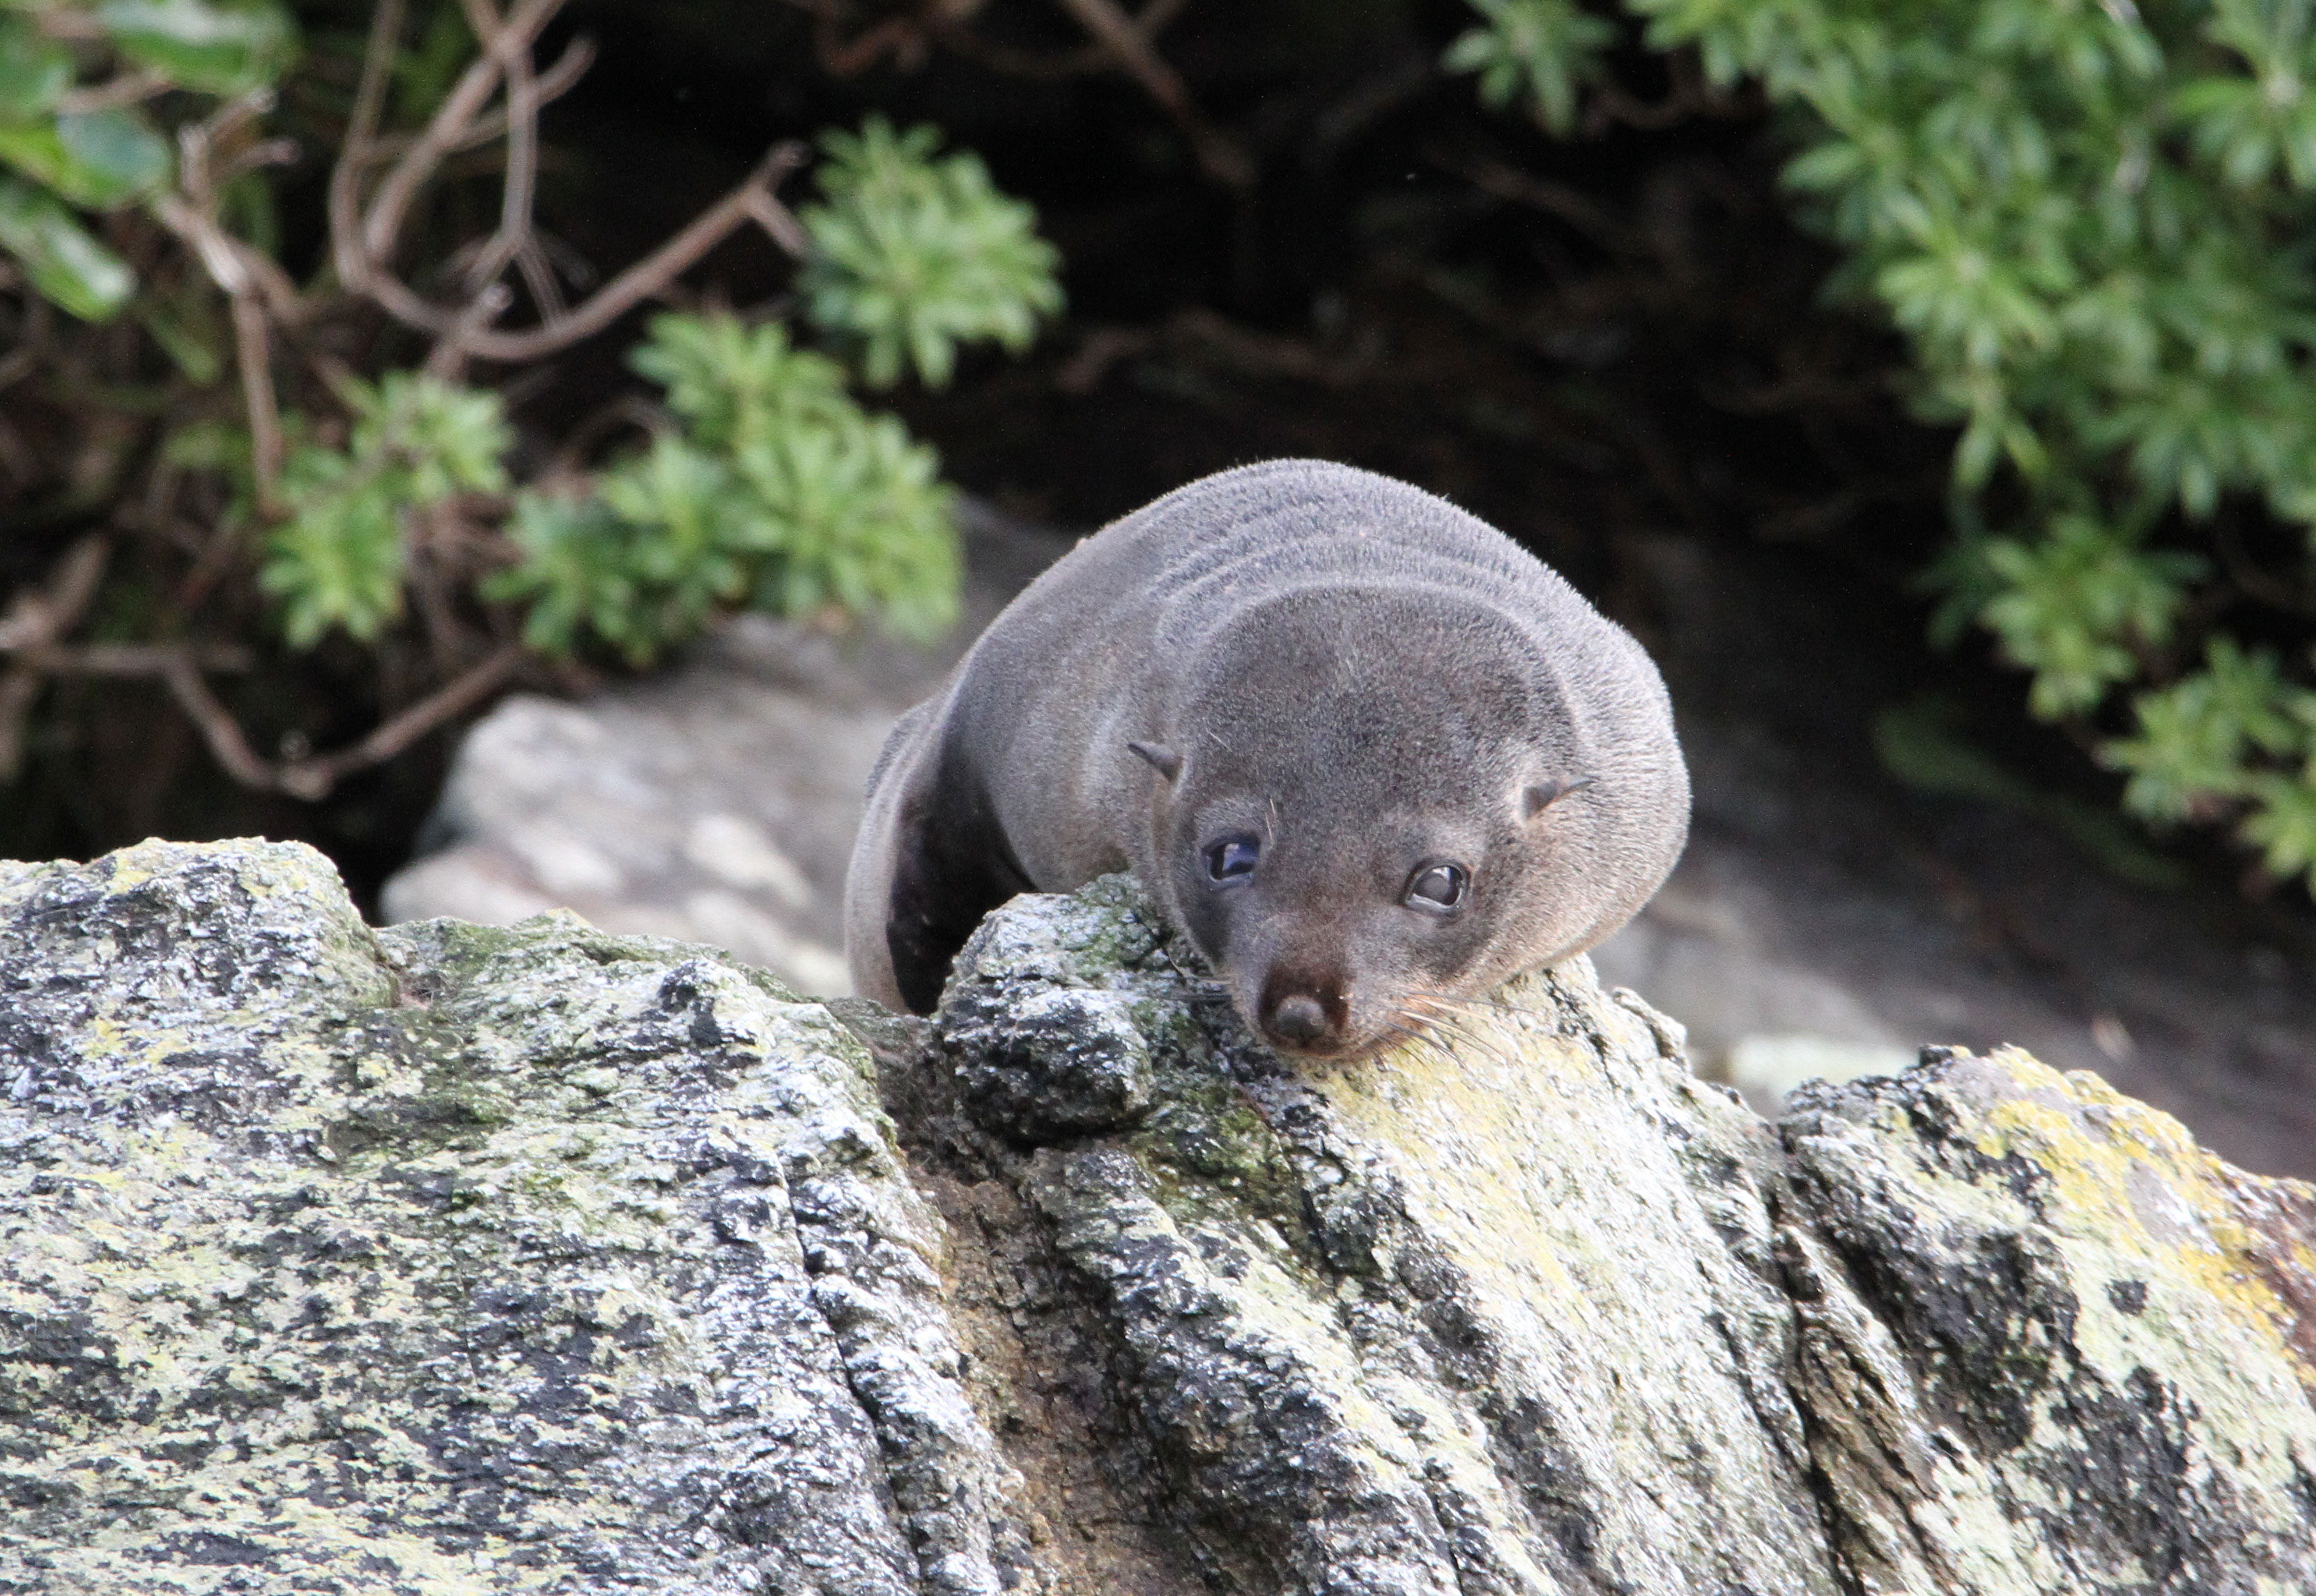 A young New Zealand Fur Seal checks us out.